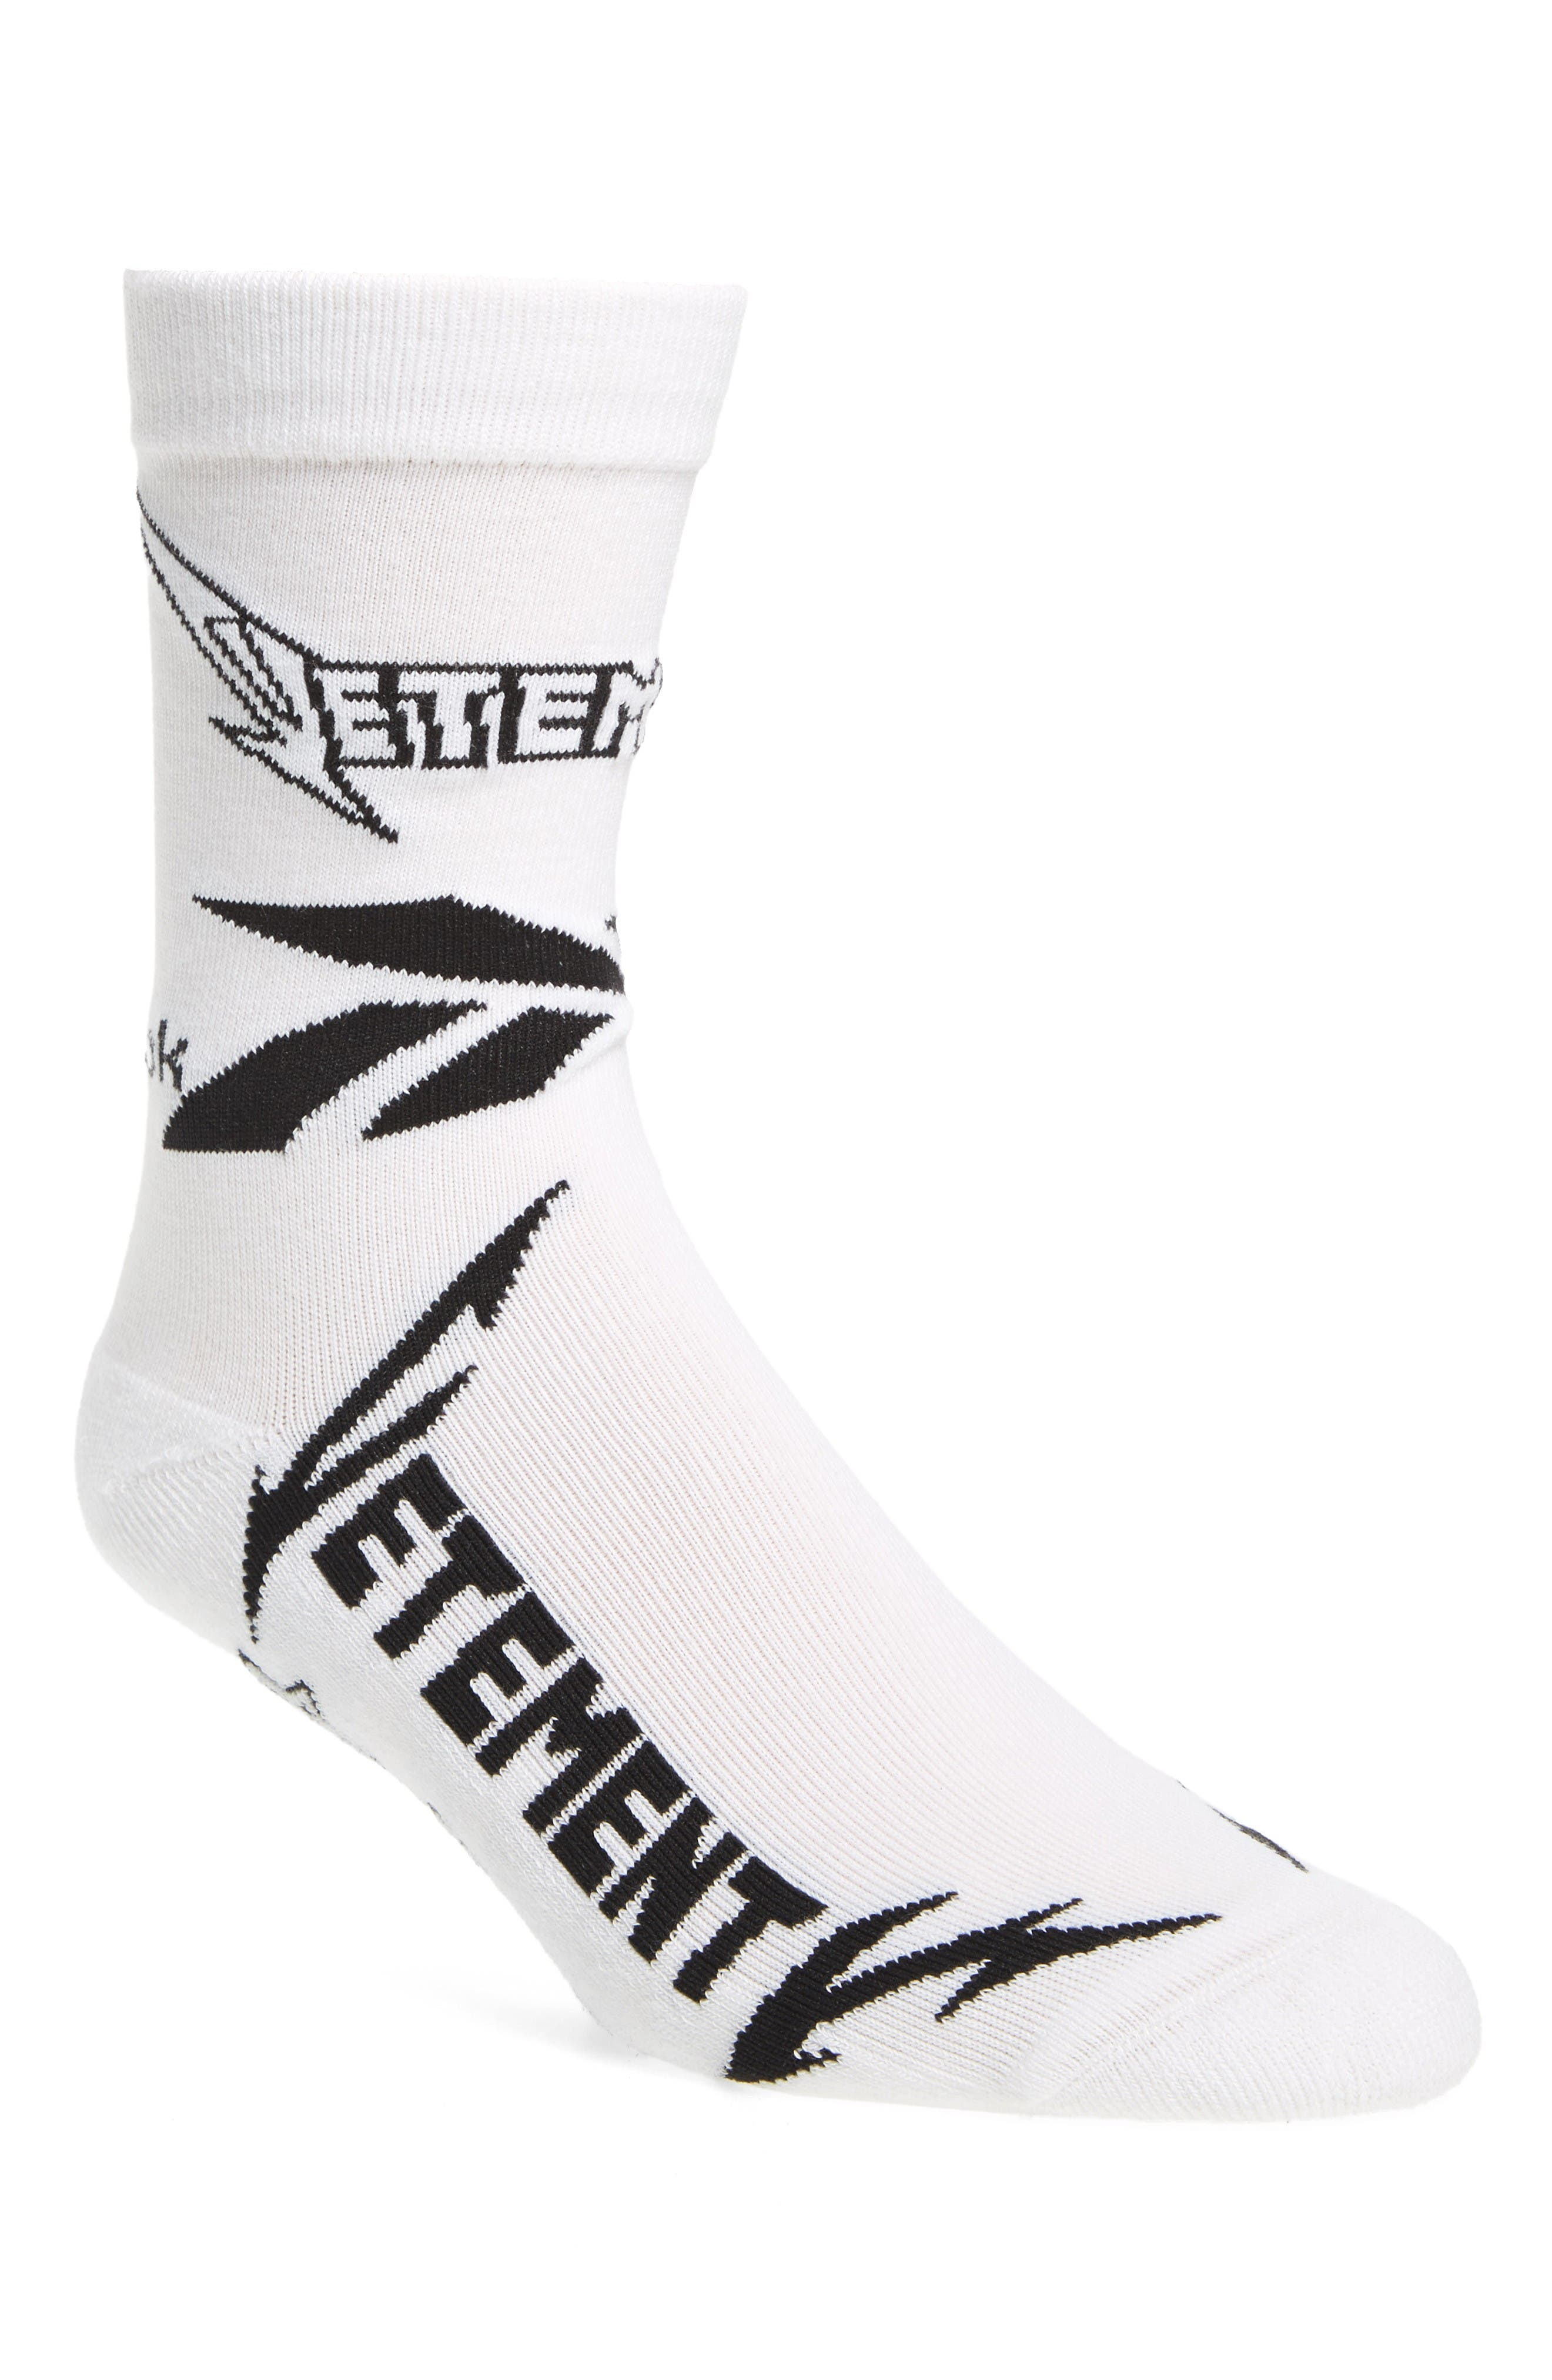 Metal Crew Socks,                         Main,                         color, White